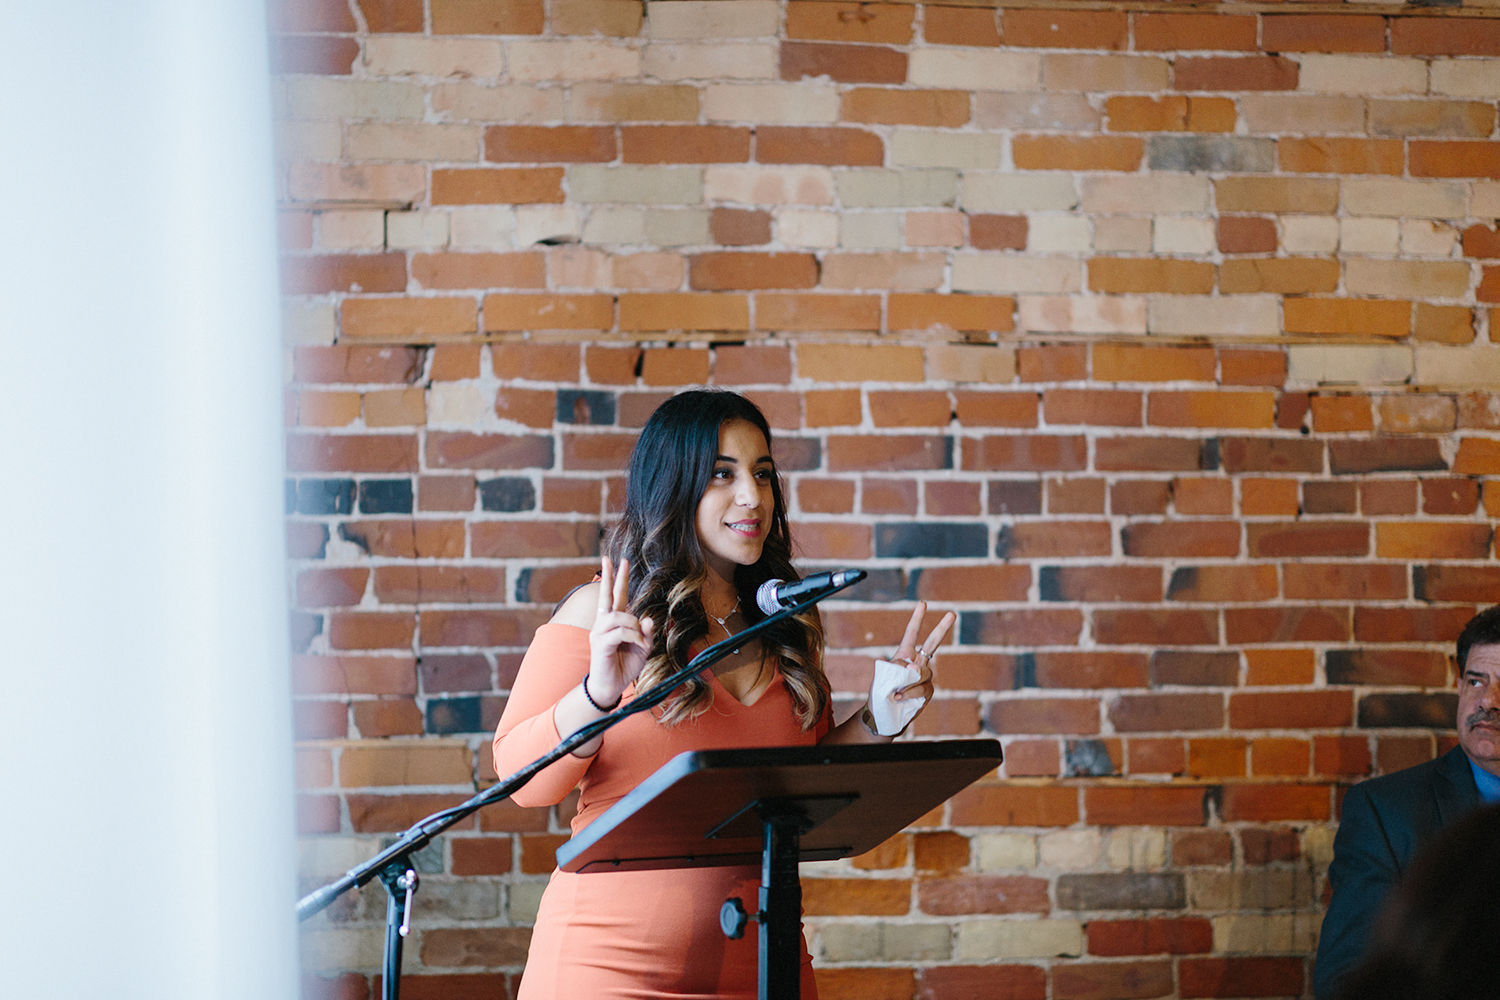 Best-Wedding-Photographers-in-Toronto-Downtown-Urban-Gladstone-Hotel-Venue-Inspiration-Top-Venues-in-Toronto-boutique-hotel-candid-documentary-brunch-wedding-reception-speeches-cute-candid-memories.jpg